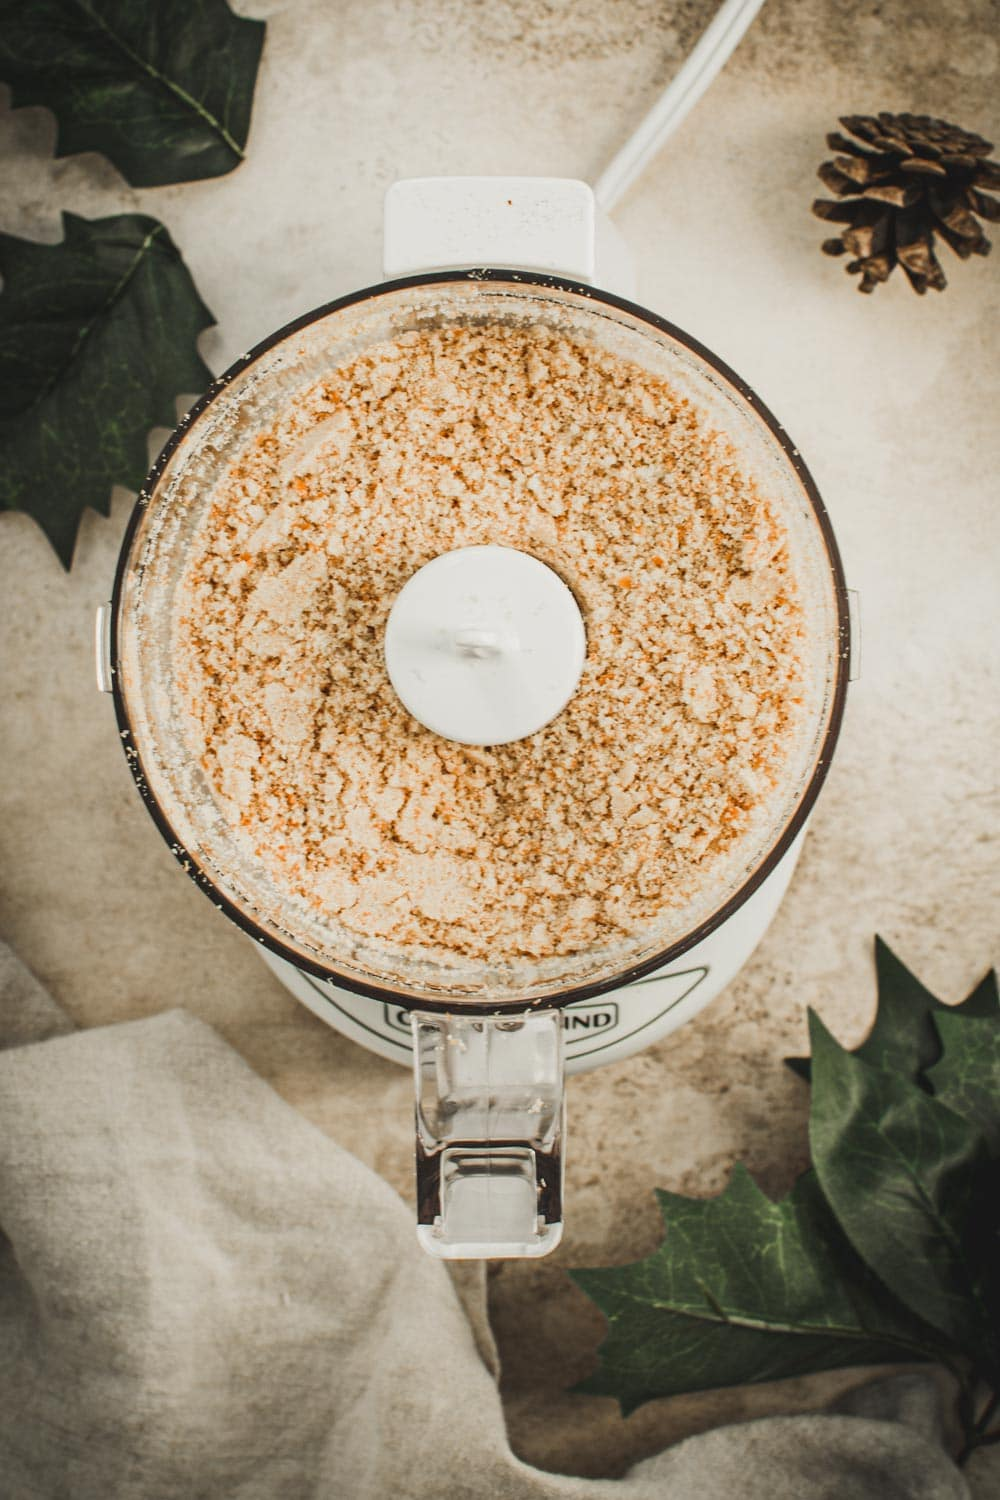 Ground Nilla wafers in a food processor.